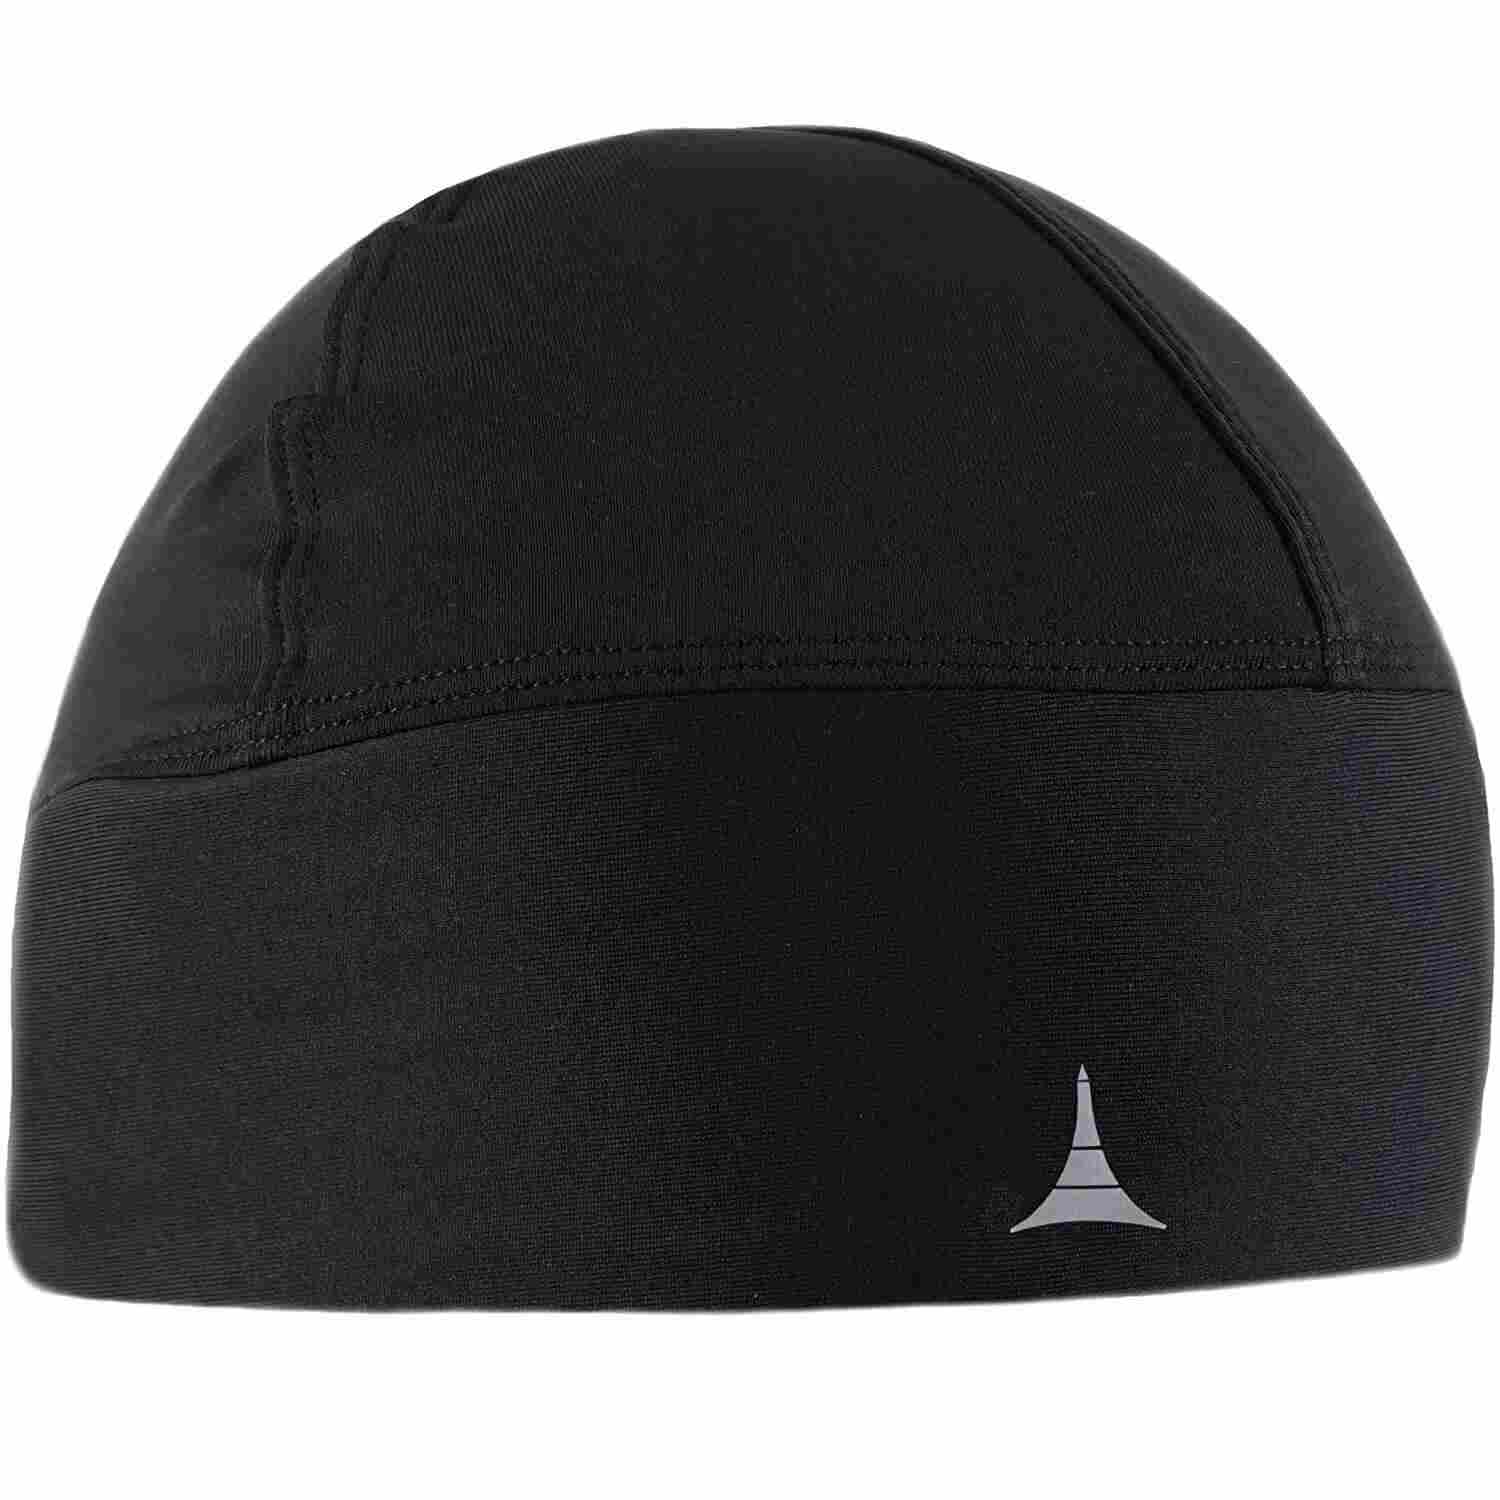 Mens Gray Pro Hypercool Vapor Skull Cap ... premium selection 2ee46 e58c2  French Fitness Revolution Skull Cap. ... 6ad70d73eea0